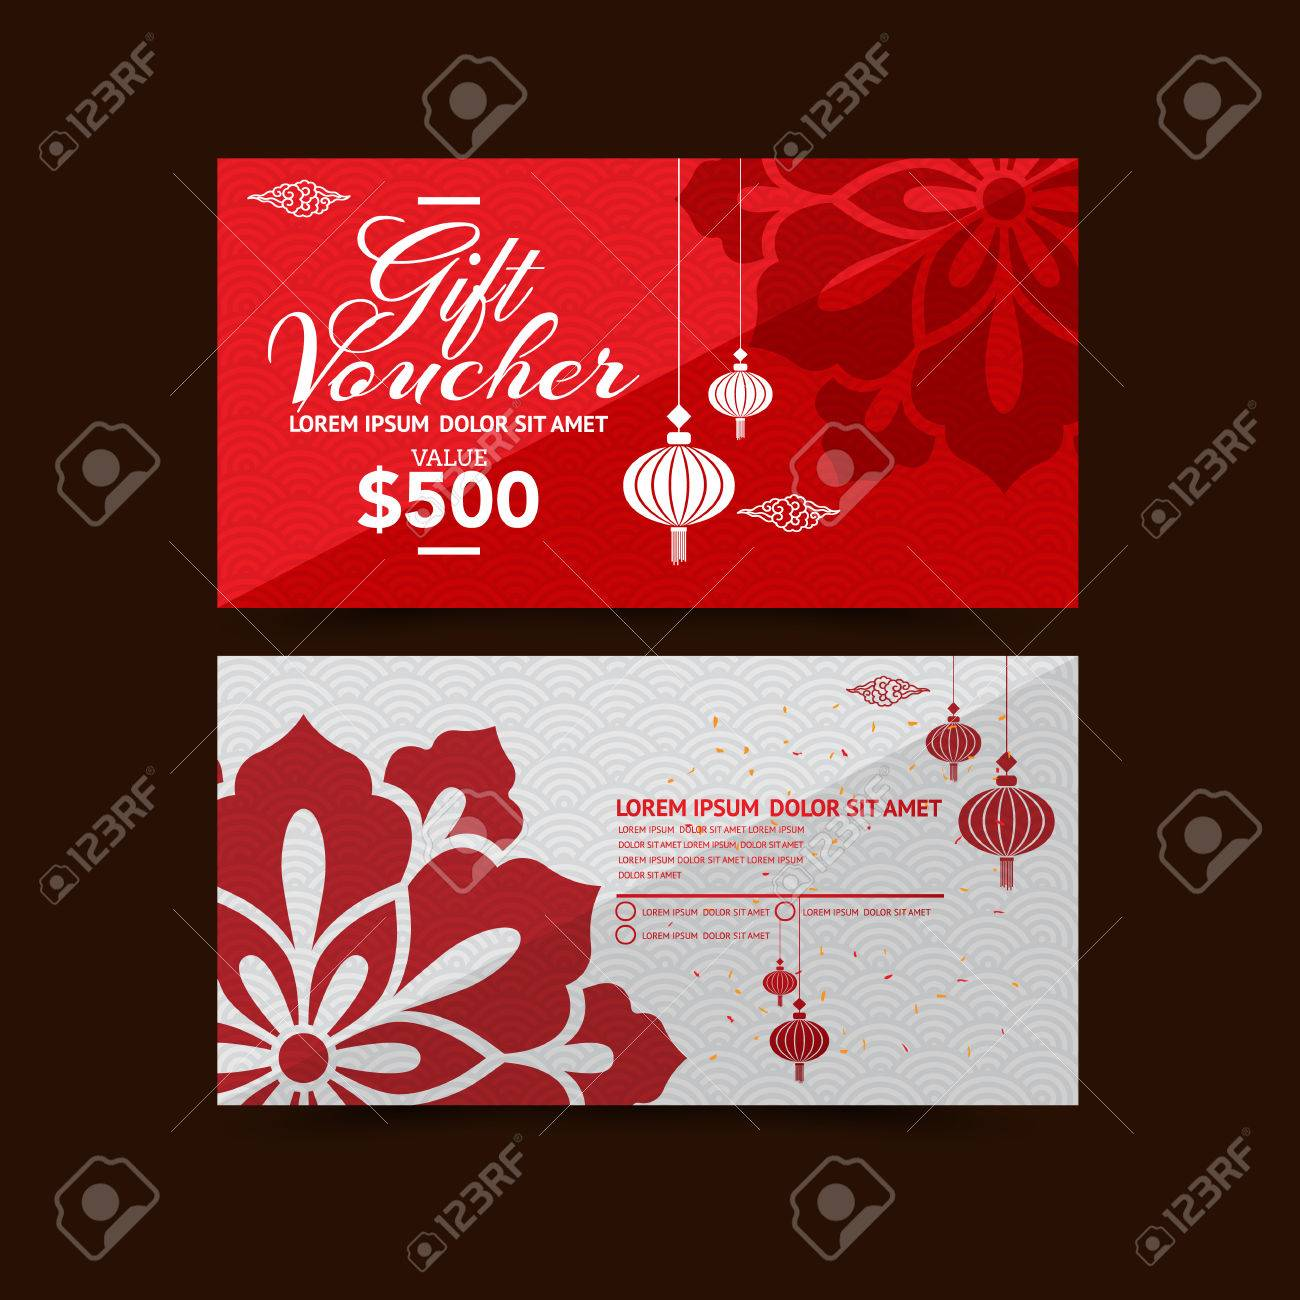 Chinese New Year Gift Voucher Design Template Royalty Free Cliparts ...